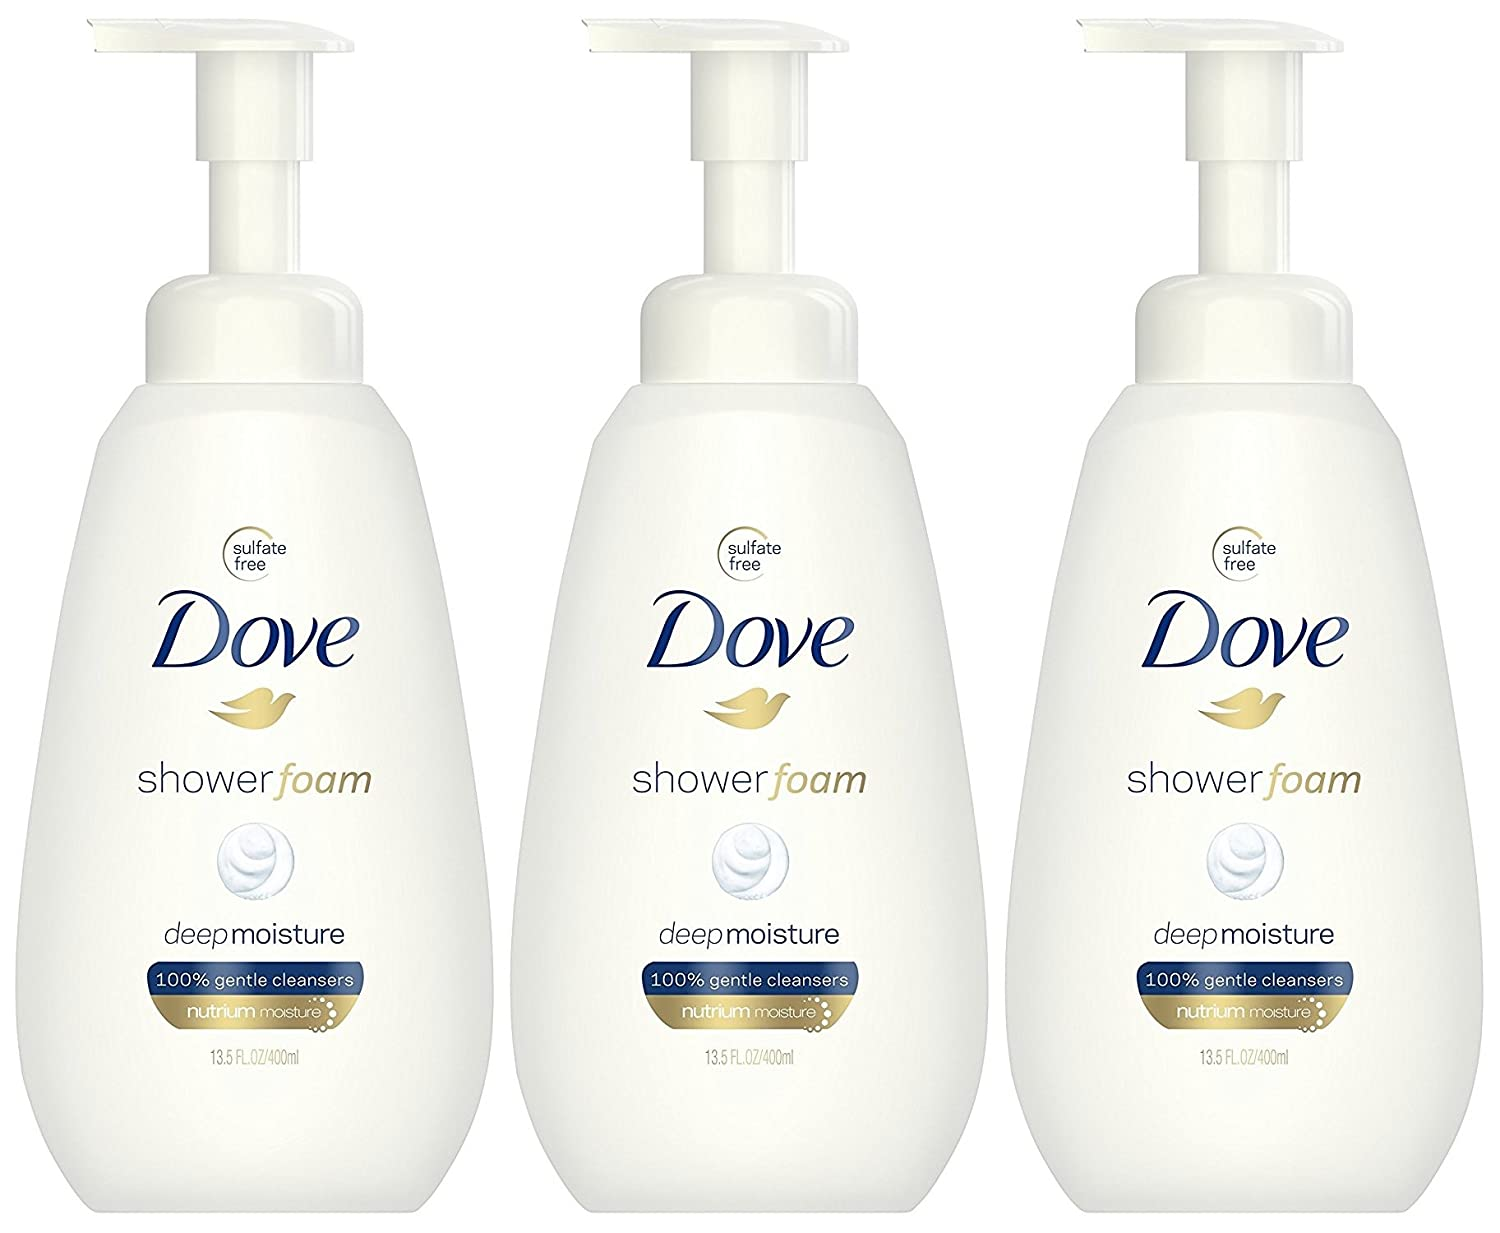 Dove Shower Foam Deep Moisture 13.5 oz, 2 count Unilever / Best Foods